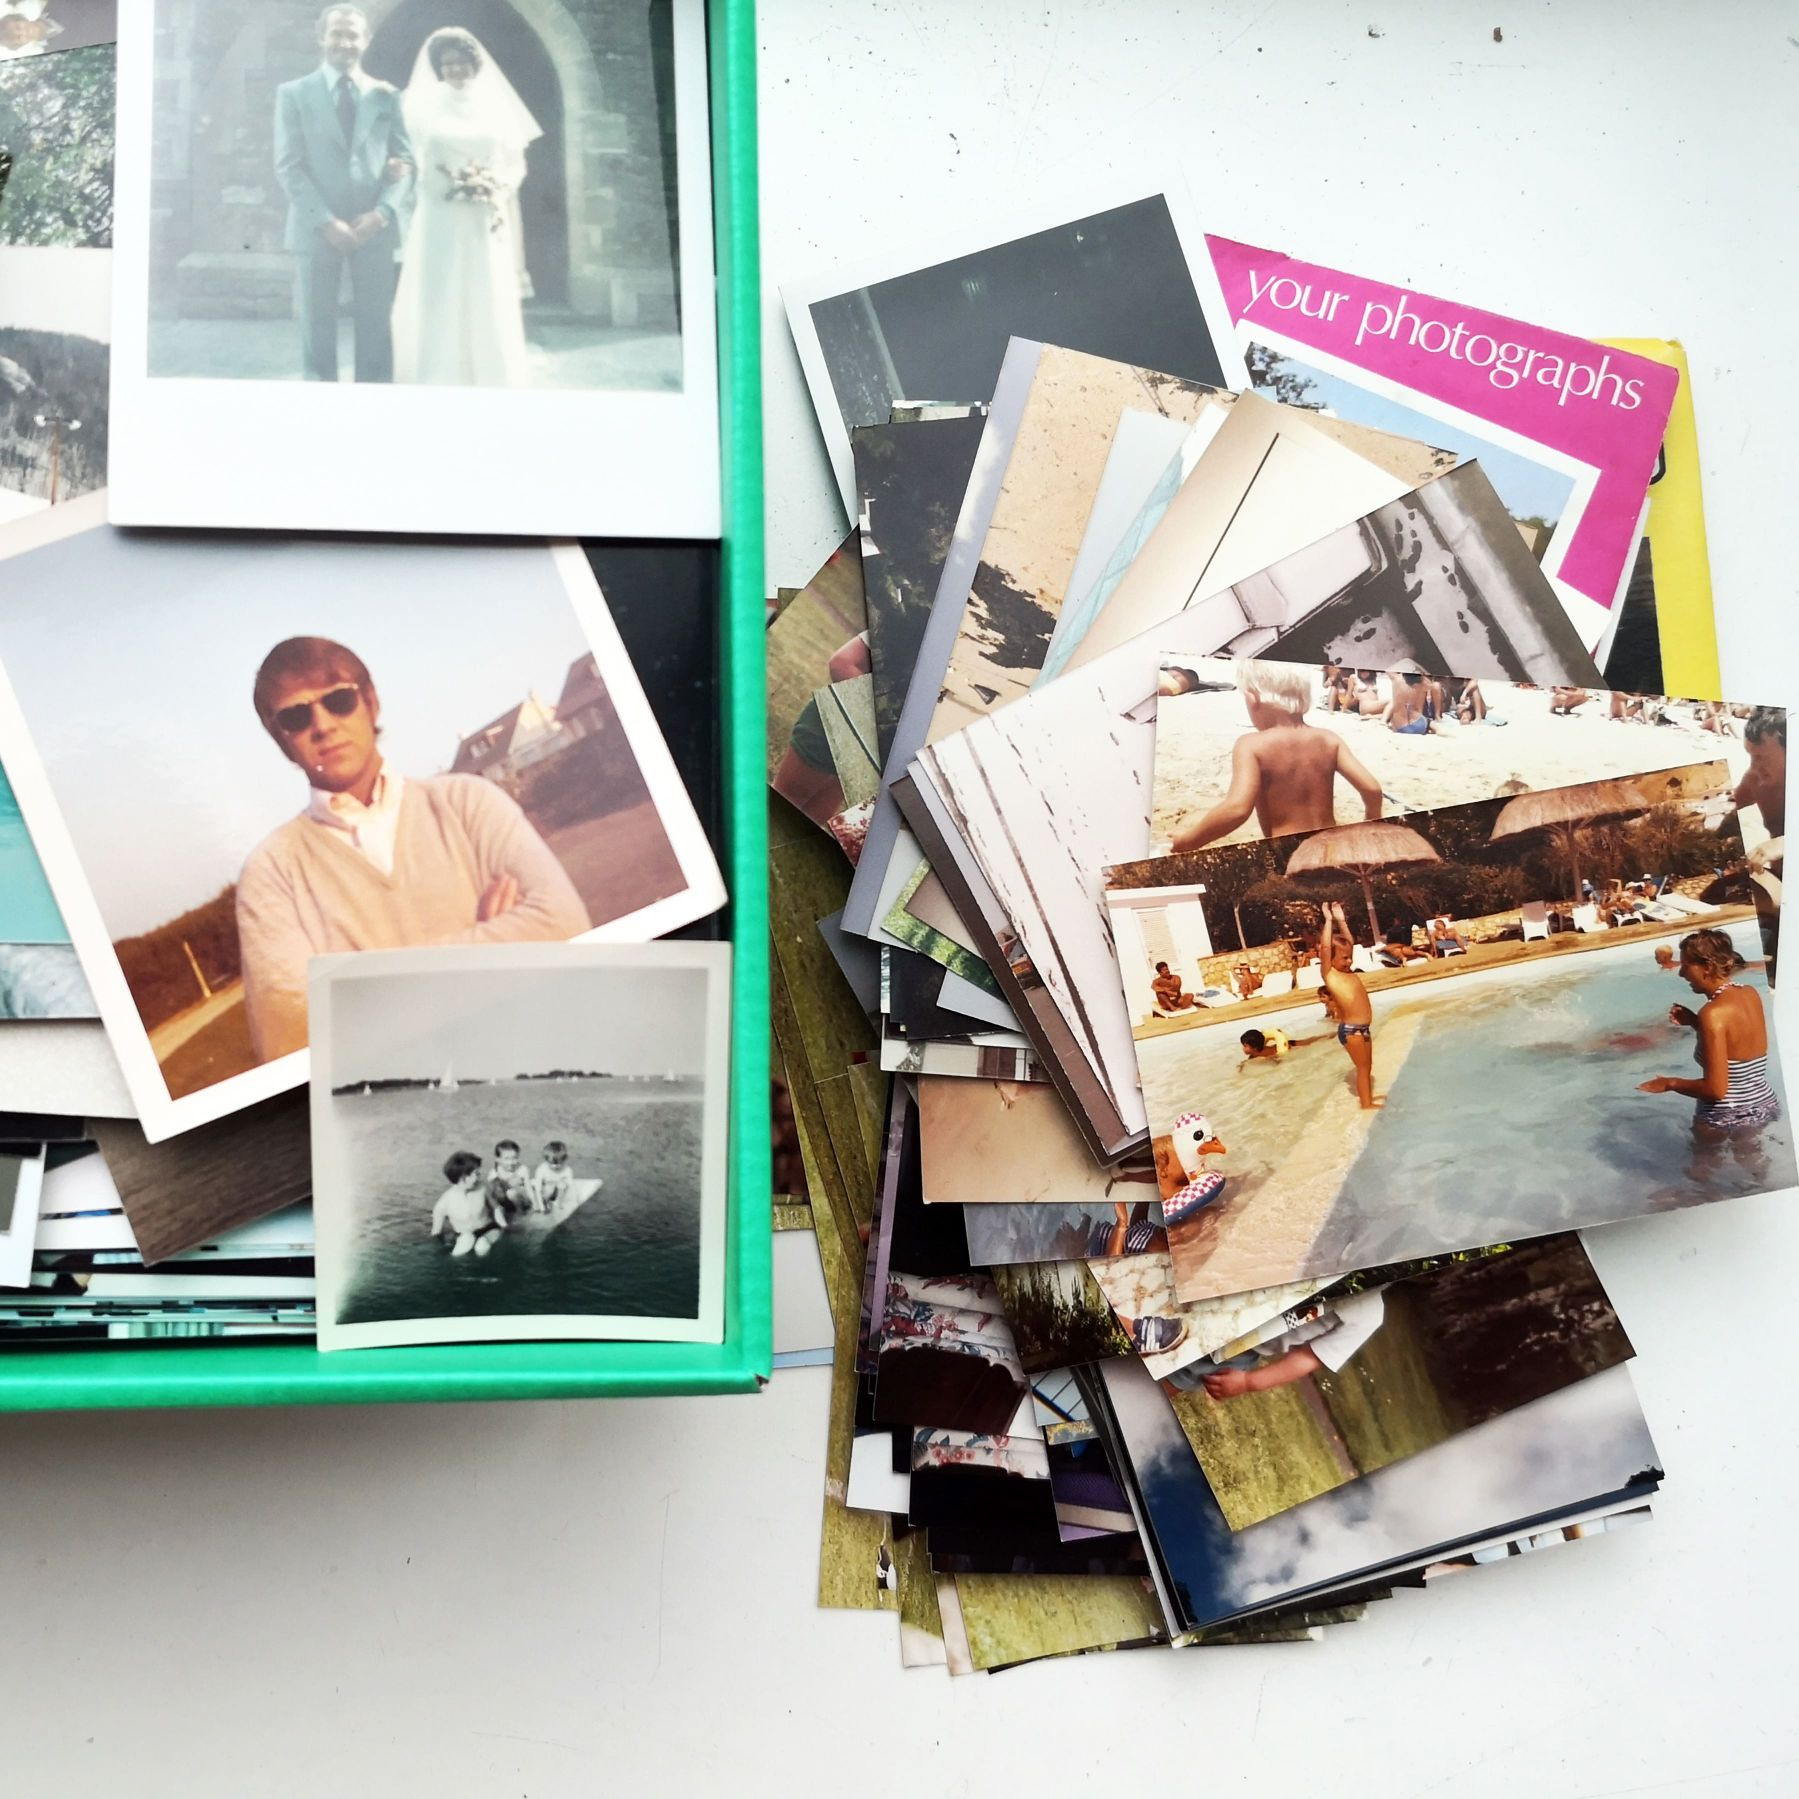 Pile of photos depicting the 500 photos photo scanning service.